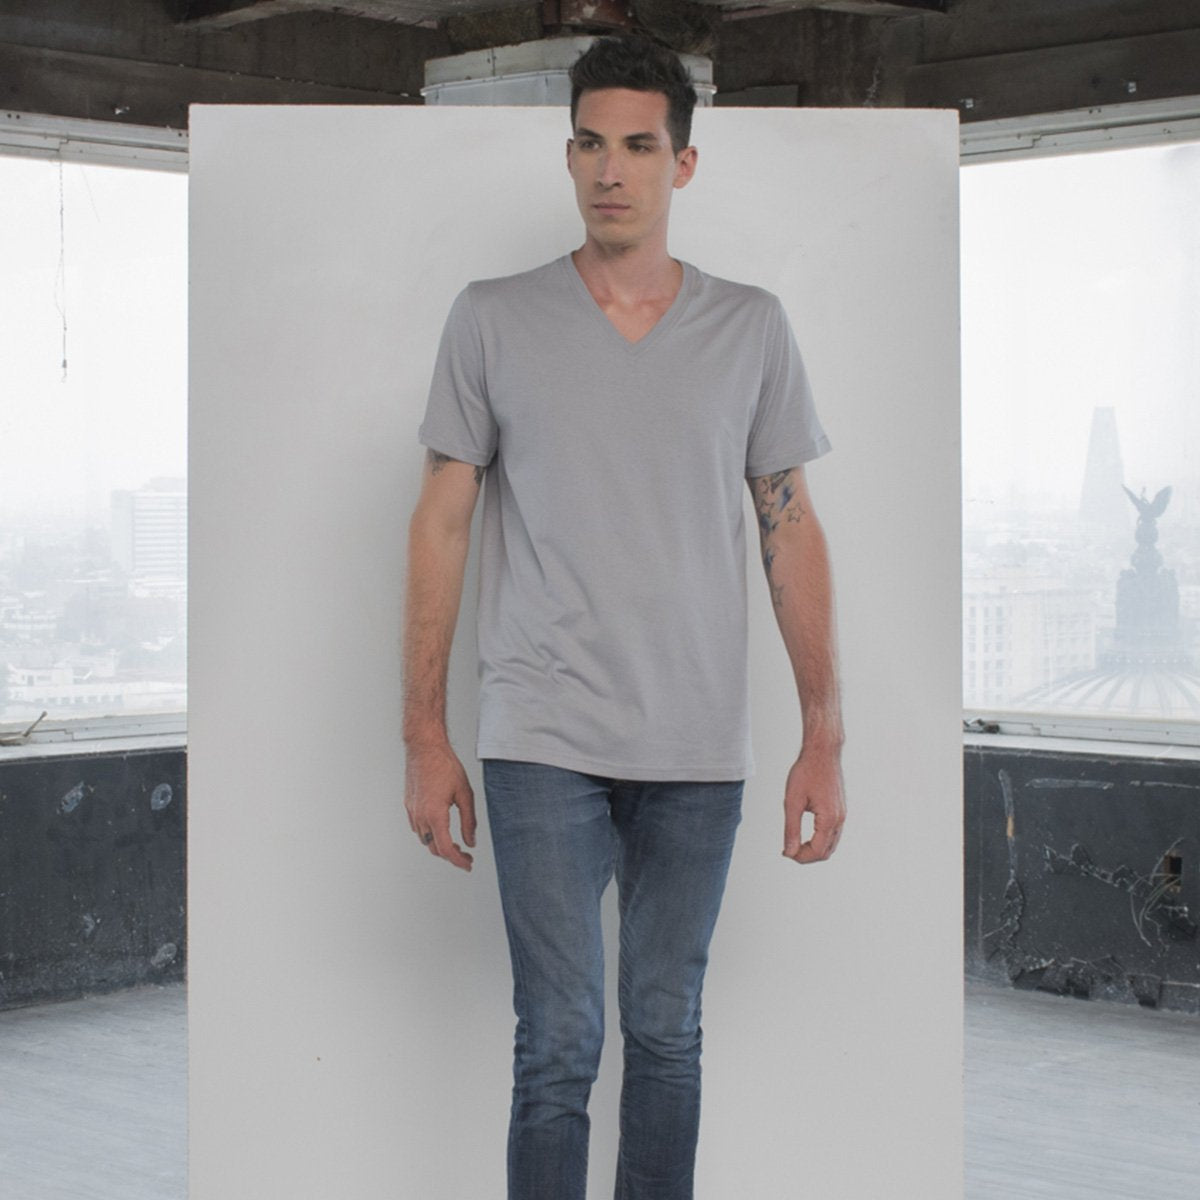 V-Neck Gray T-shirt